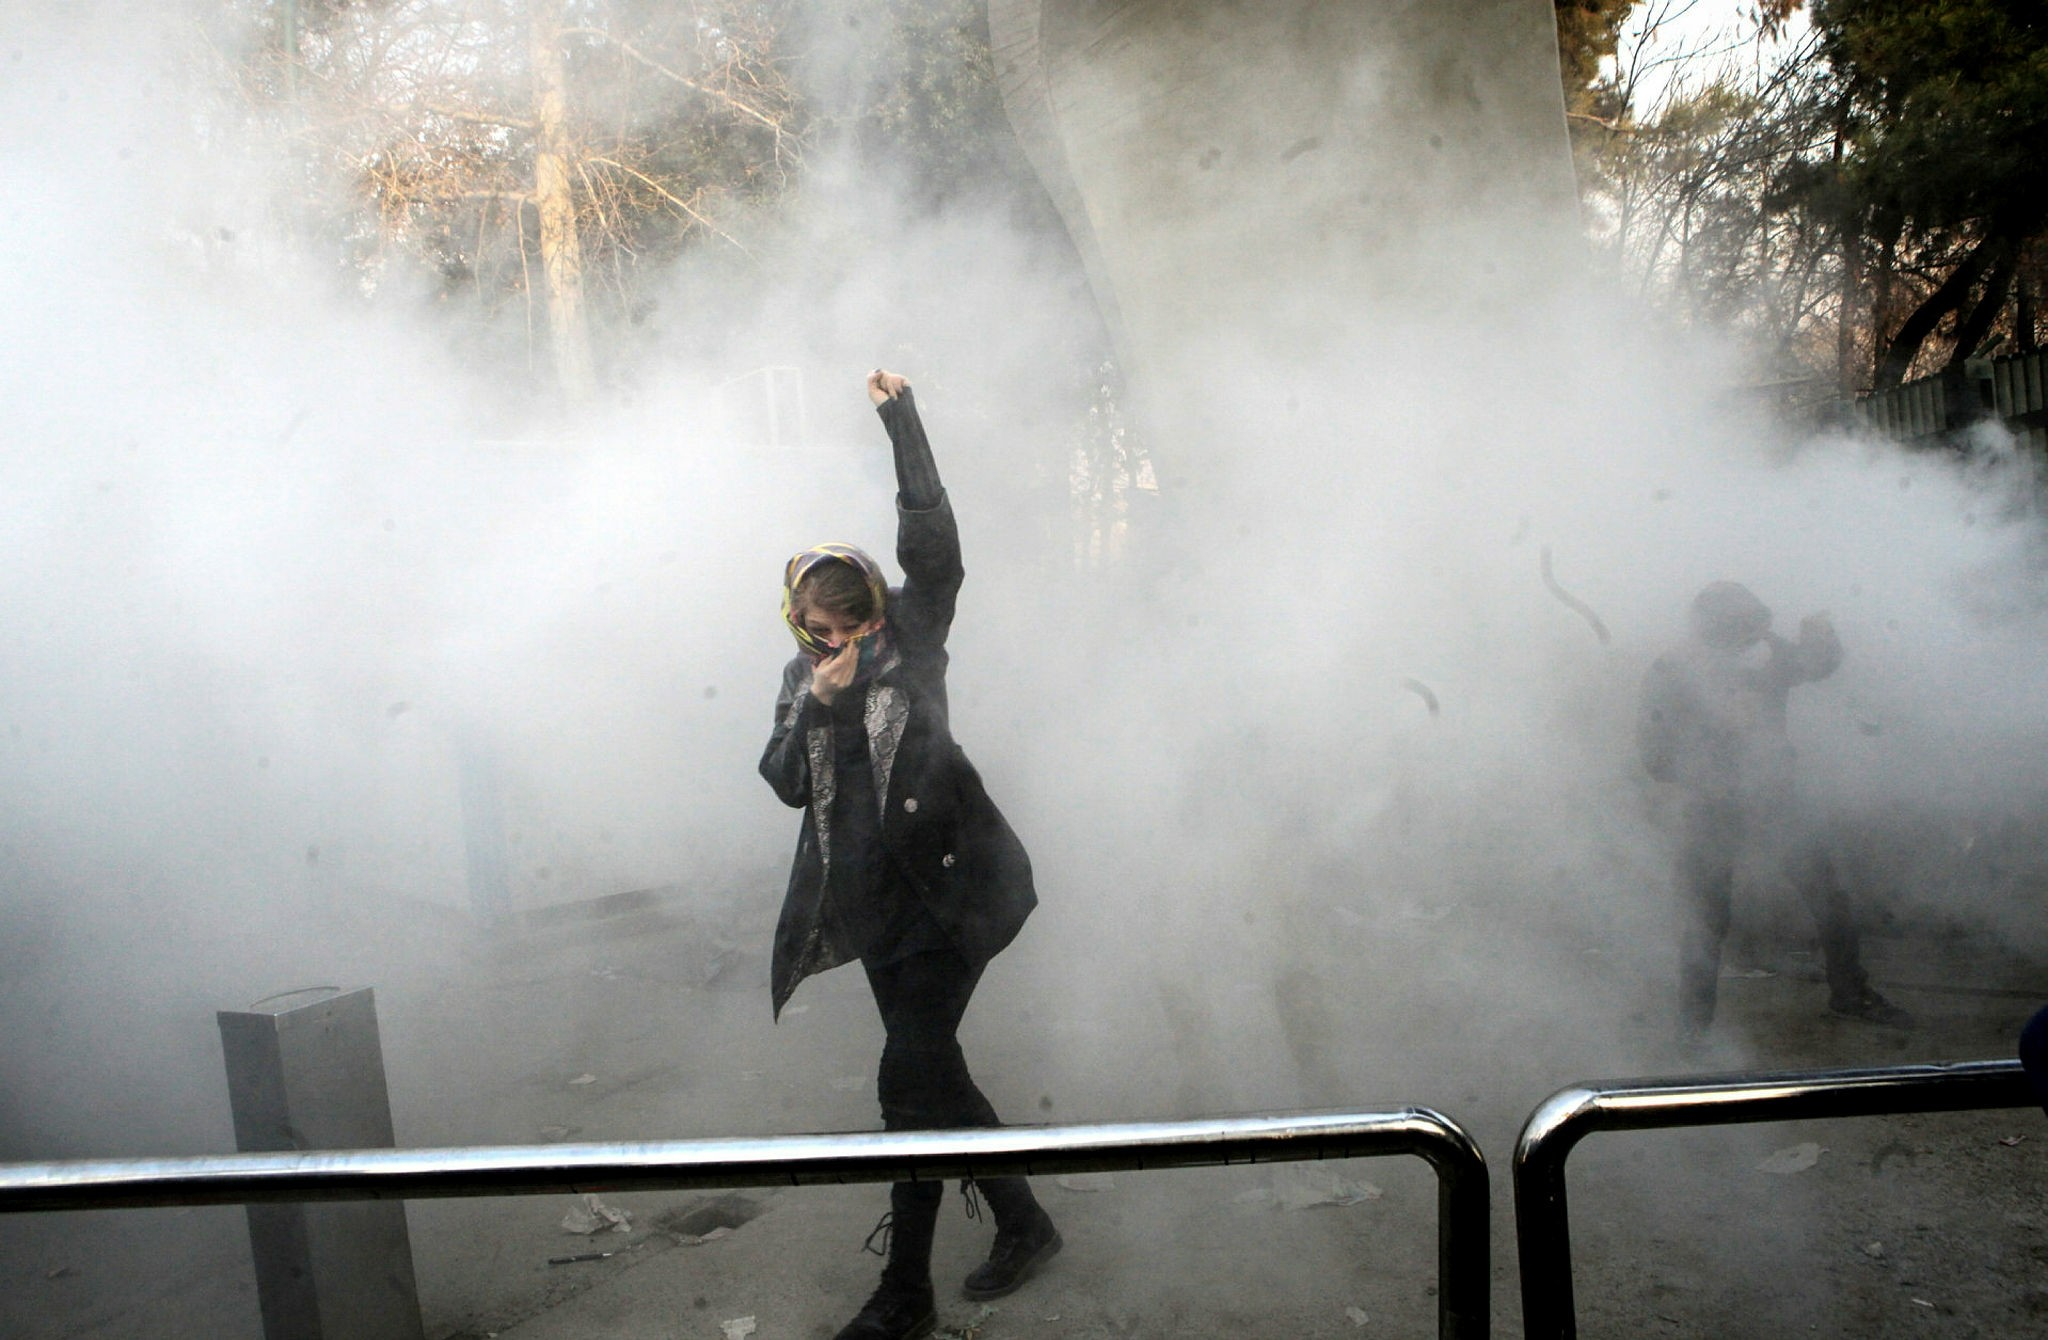 Iranian students clash with riot police during an anti-government protests around the Tehran University in Tehran, Iran, 30 December 2017. Media reported on 01 January 2018 that the anti-gov't protests in Iran are continuing. (EPA File Photo)